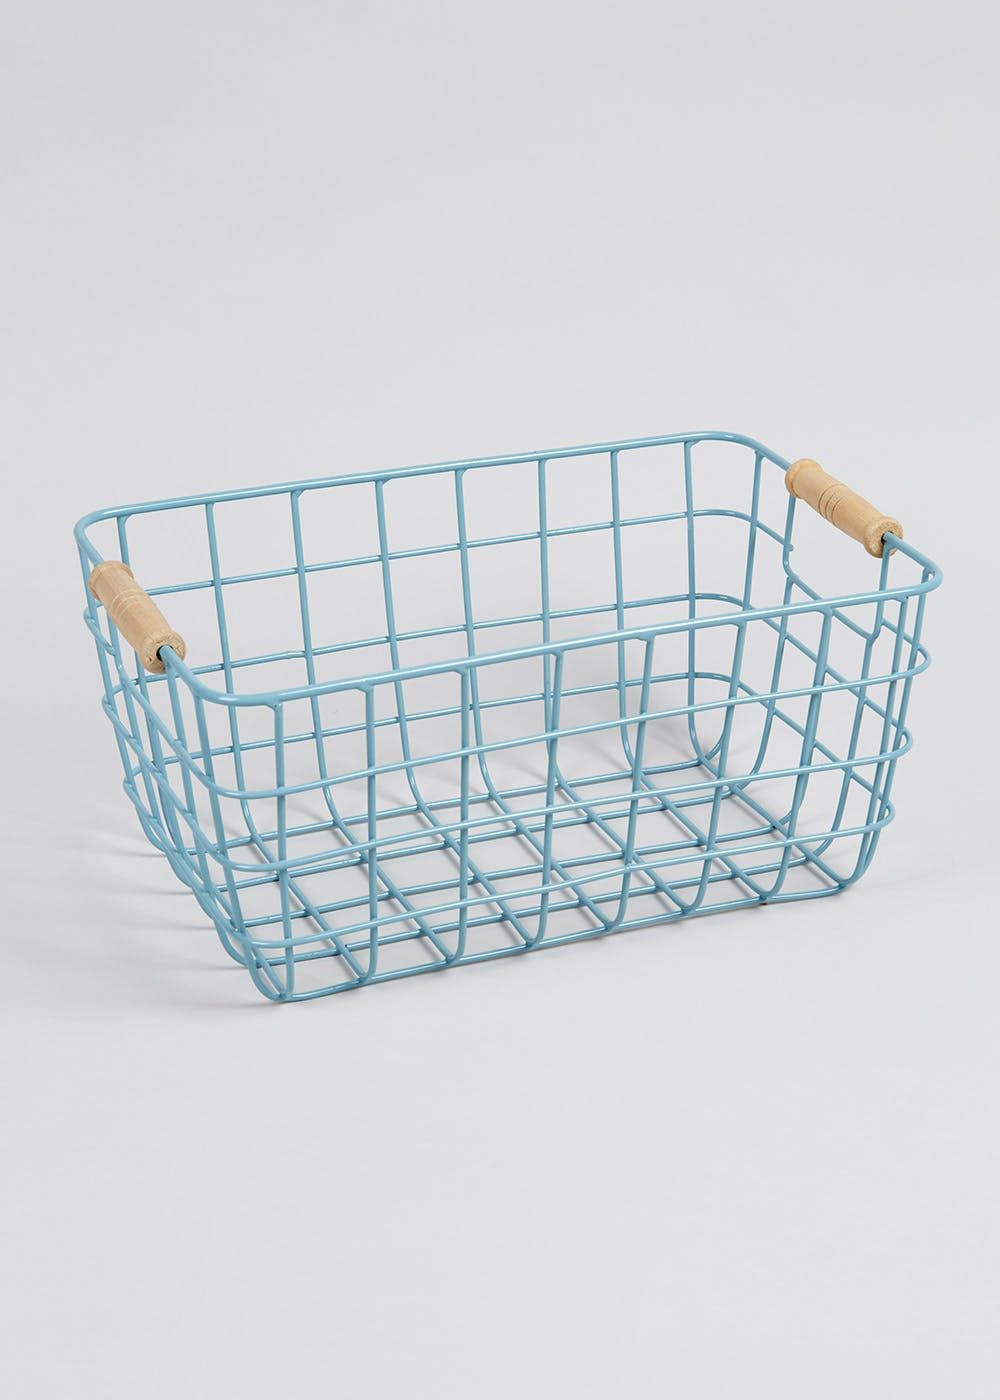 Metal Basket (30cm x 20cm) | Metal baskets, Metals and Wire storage